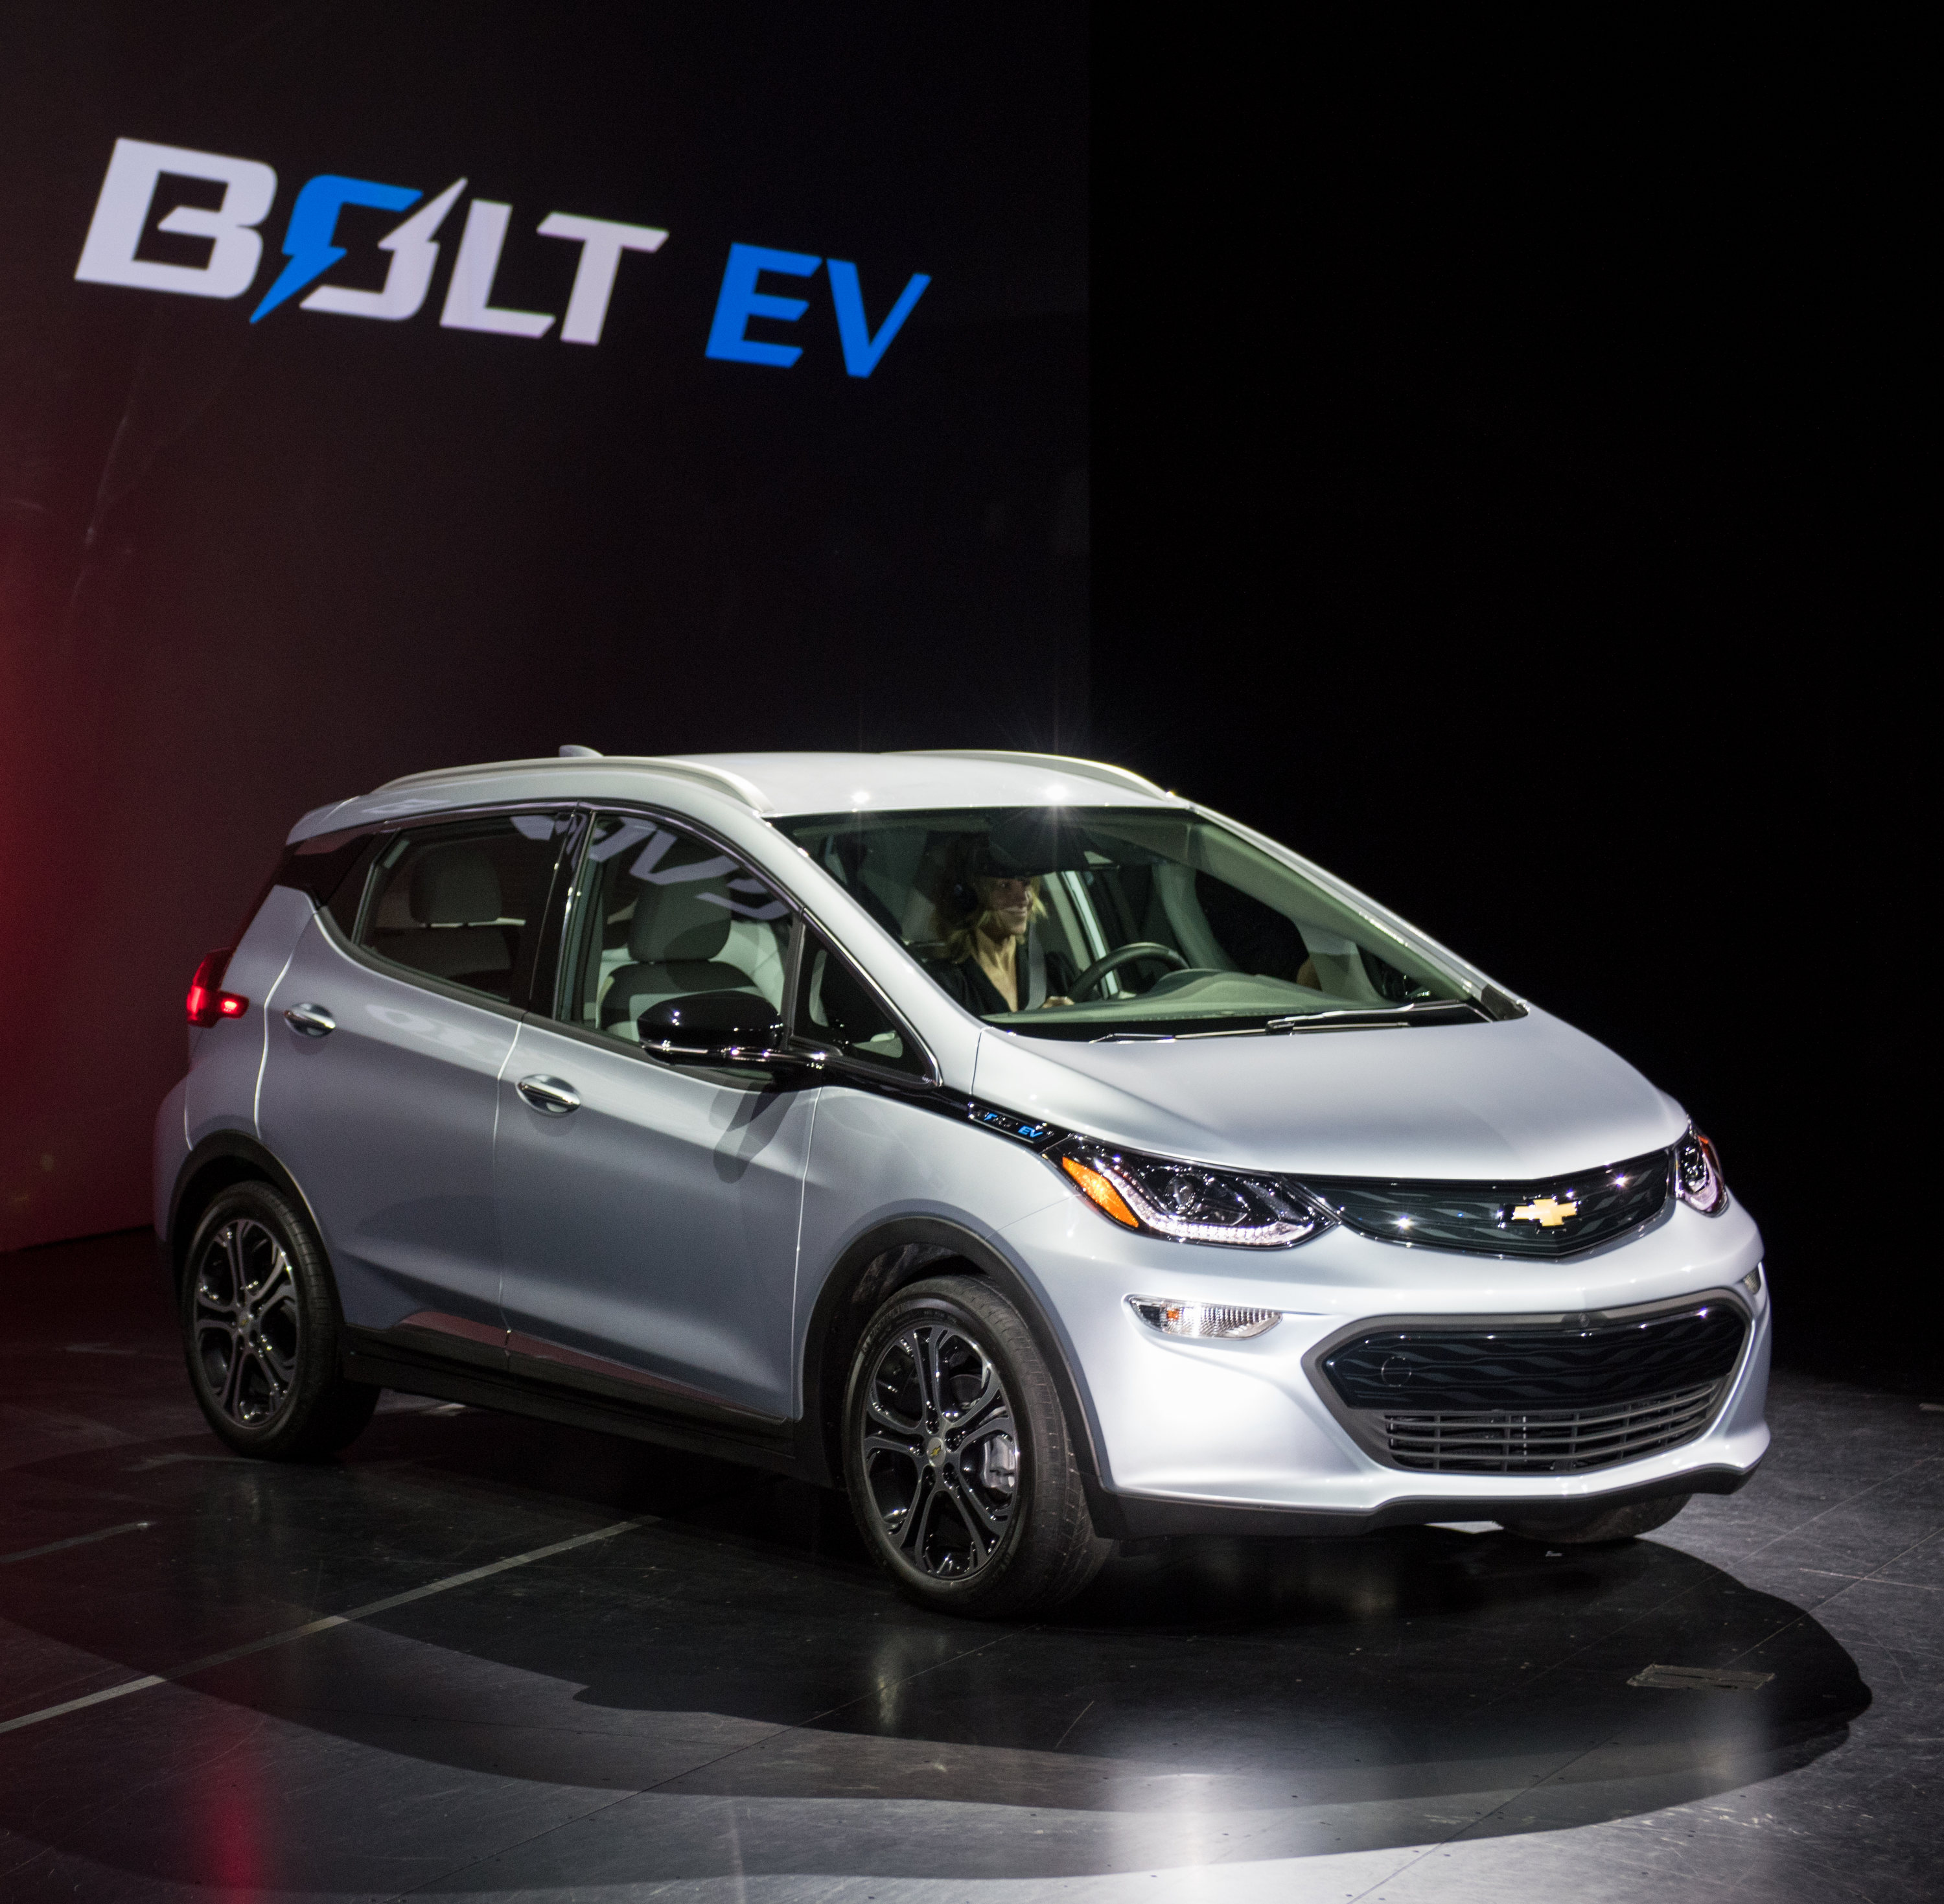 chevrolet volt wiring diagram data wiring diagram update2017 chevrolet bolt ev production electric car unveiled at ces 93 chevy truck wiring diagram chevrolet volt wiring diagram